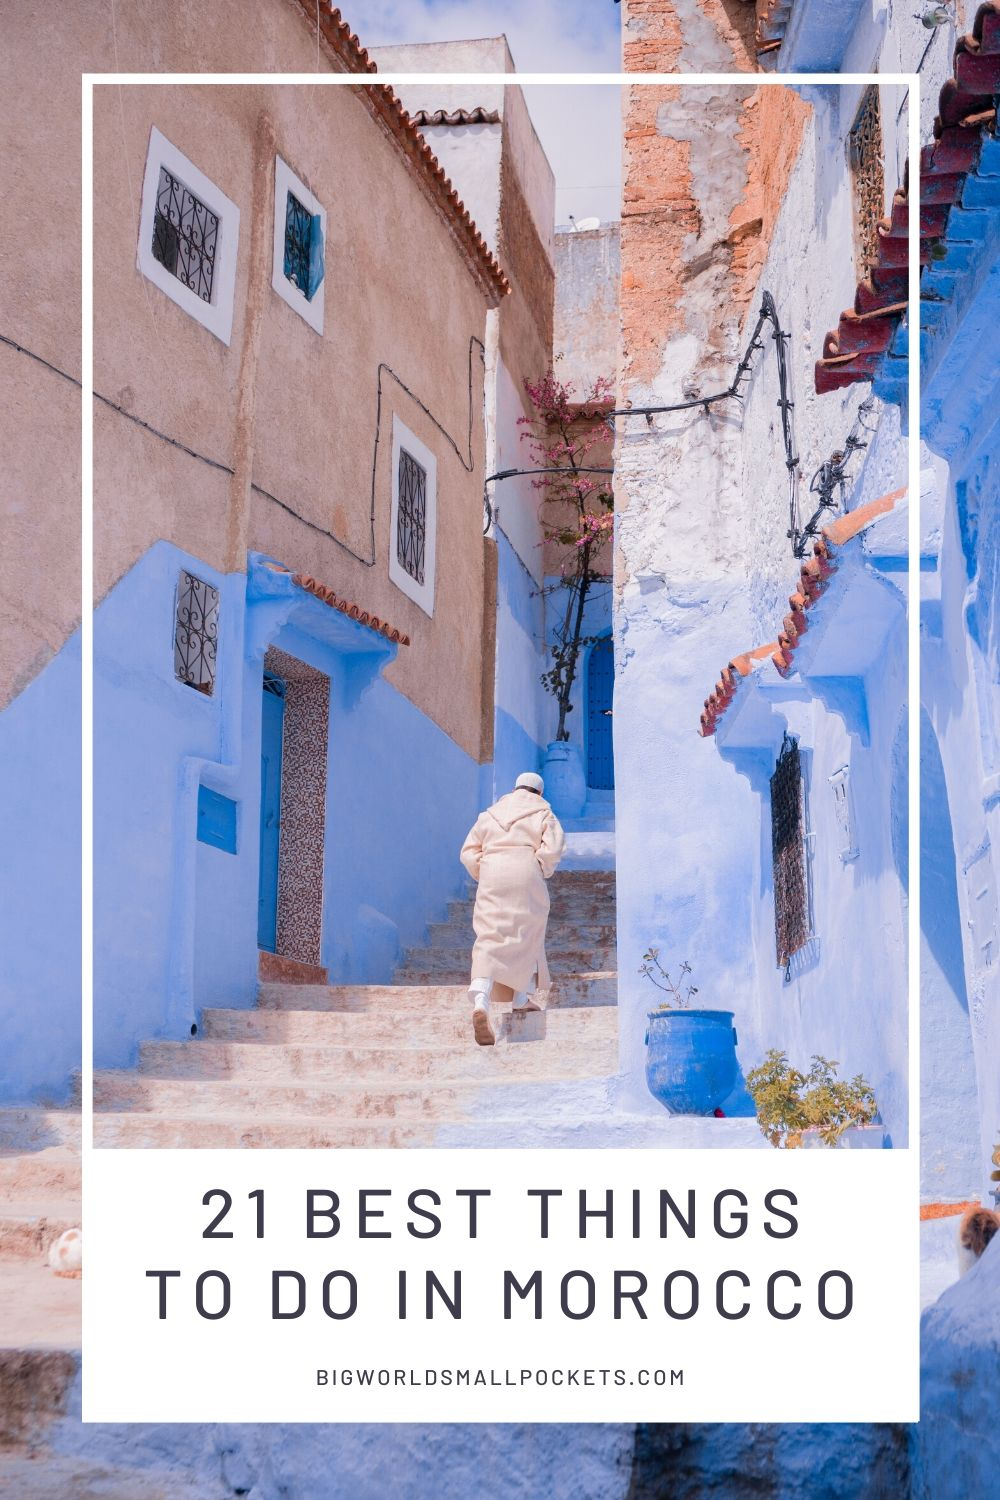 21 Top Things To Do in Morocco